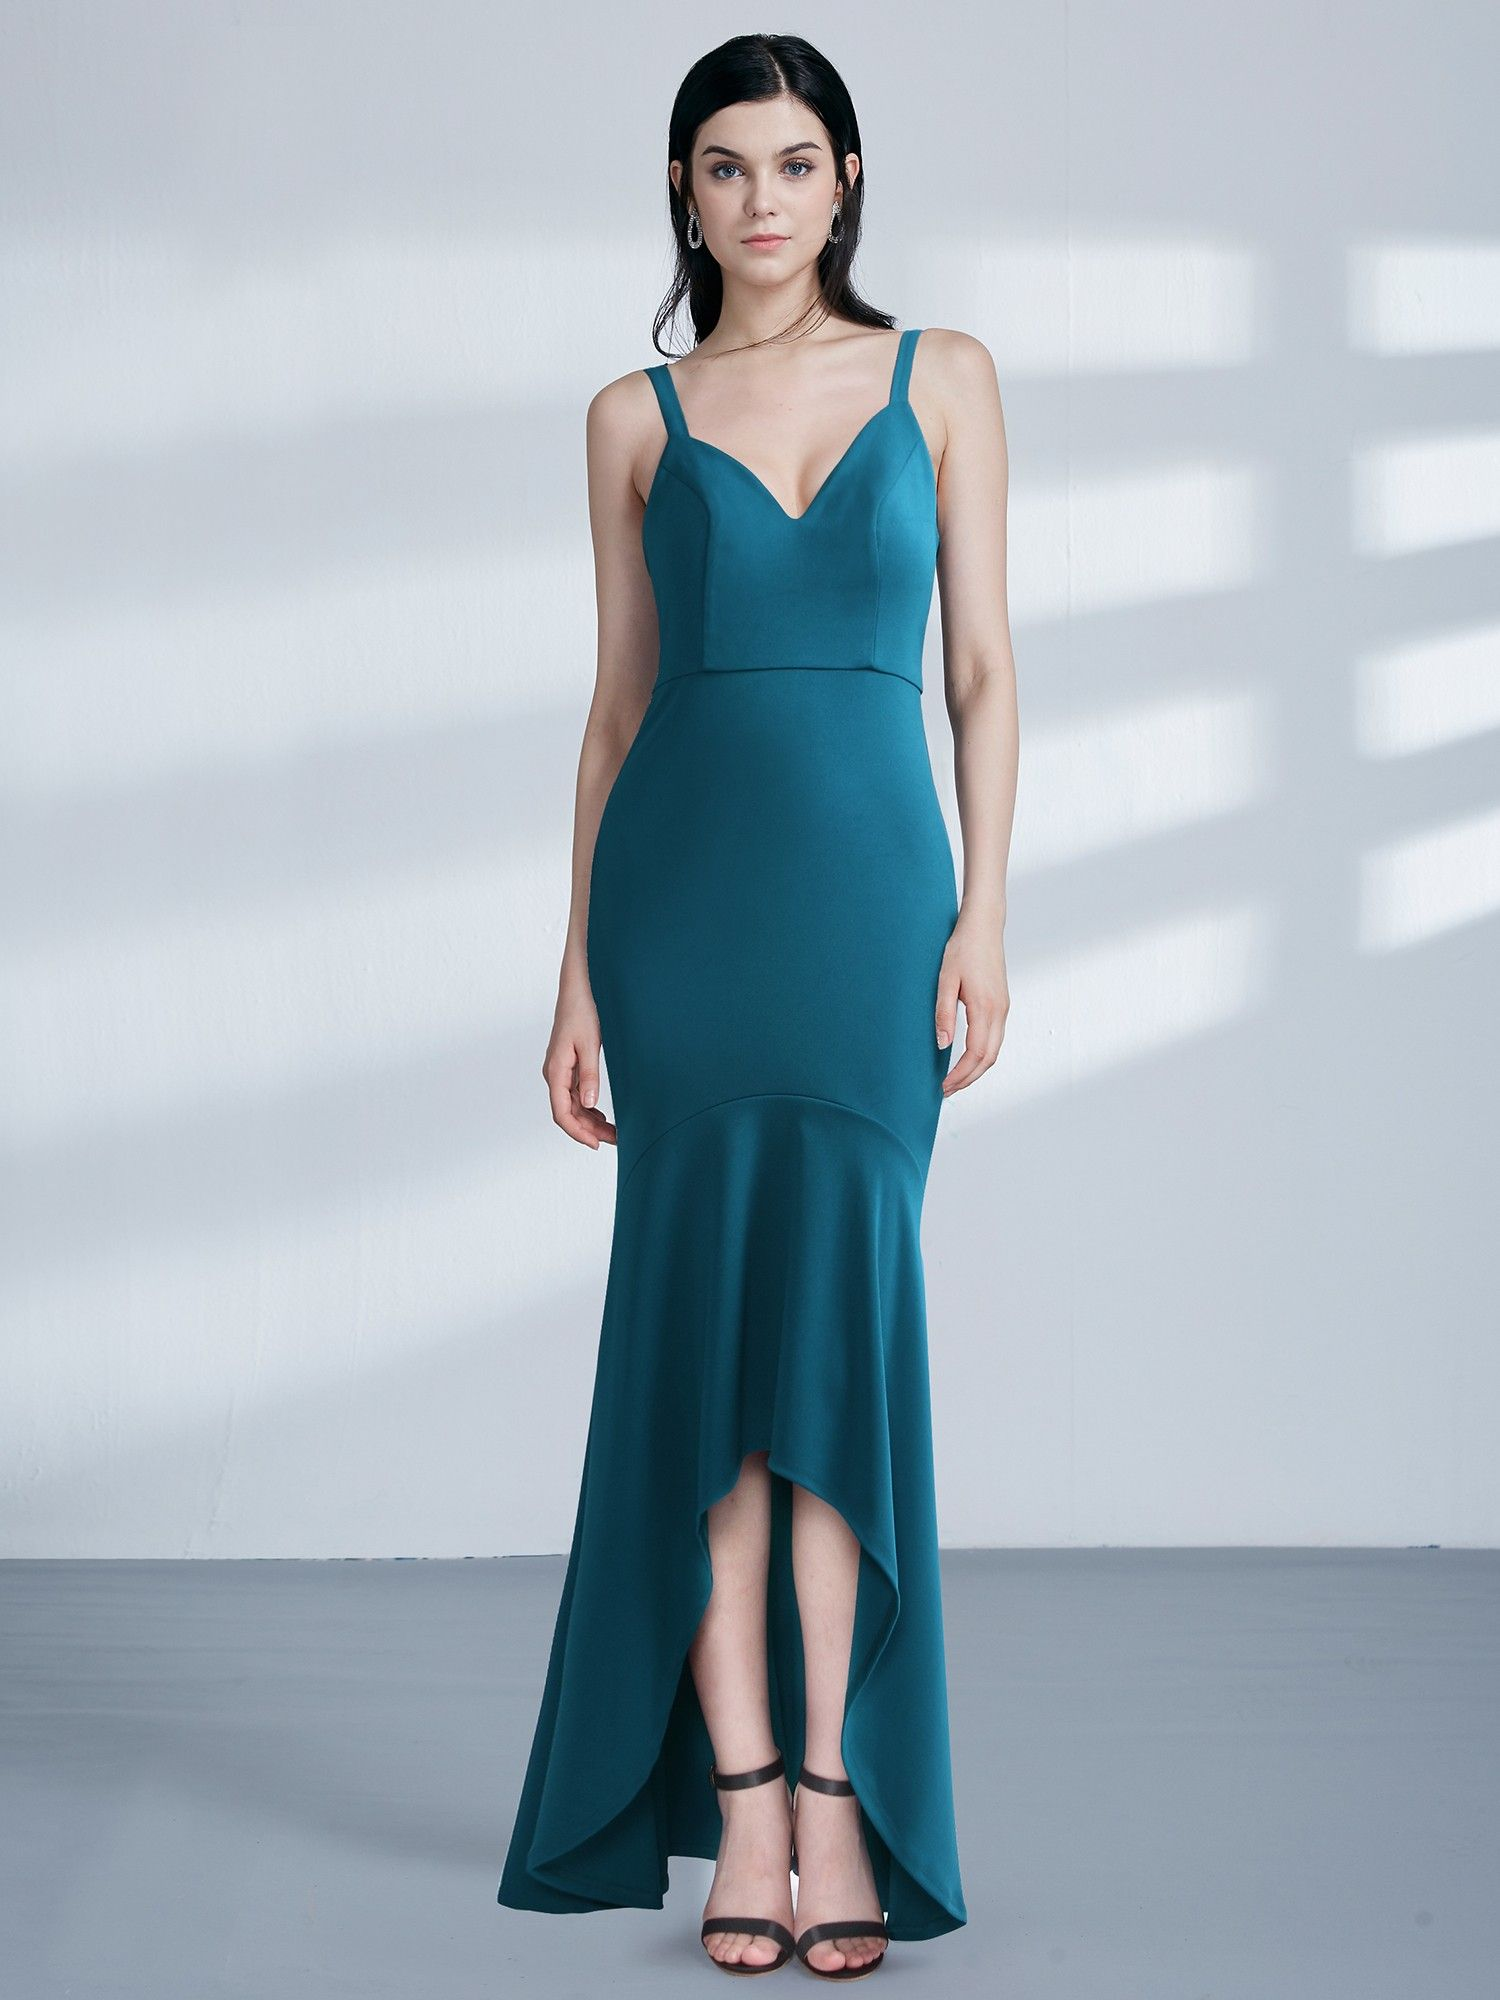 519b963db9a High Low Body Con Evening Party Dress in Evening Dresses